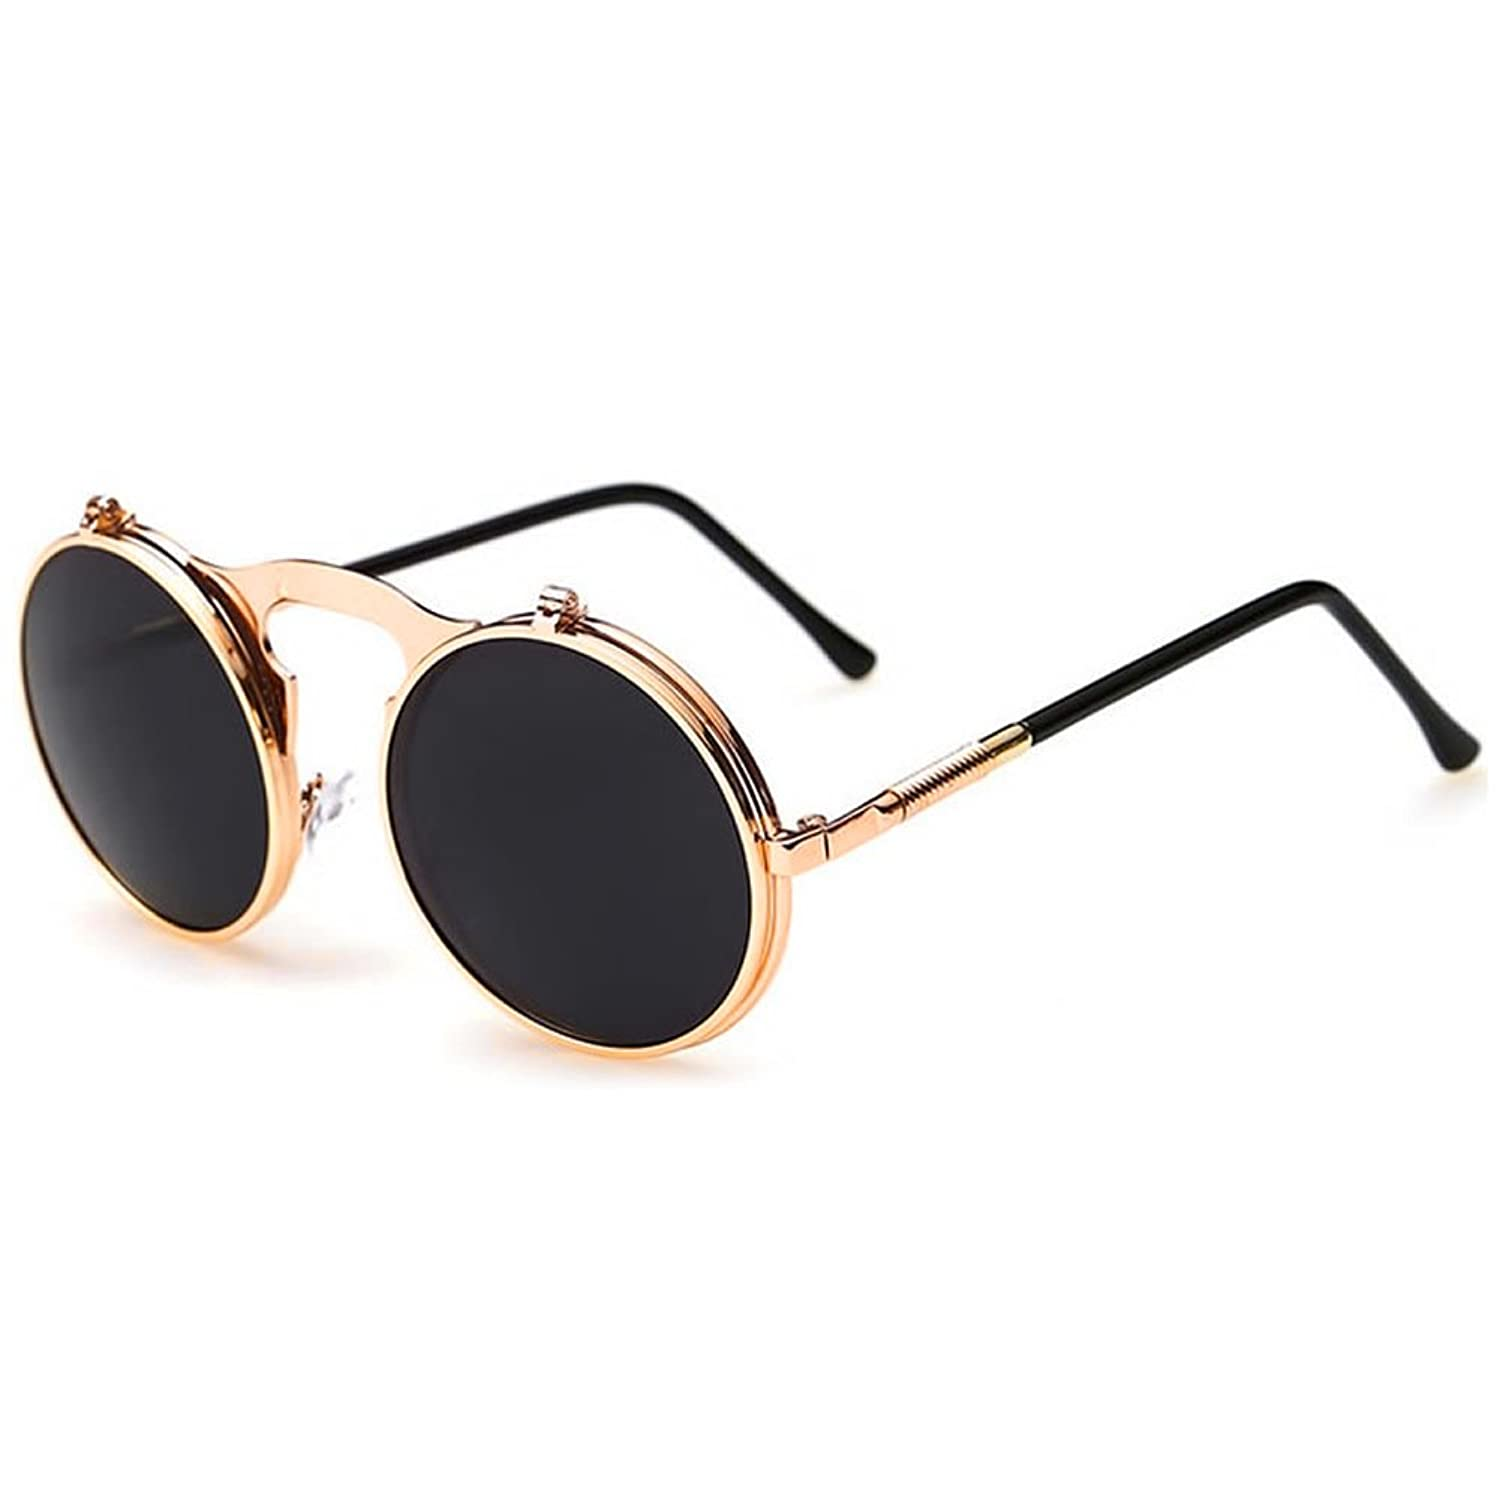 Julyshop Vintage Round Metal Frame Flip Up Sunglasses Glasses New Eyewear Lens by Julyshop